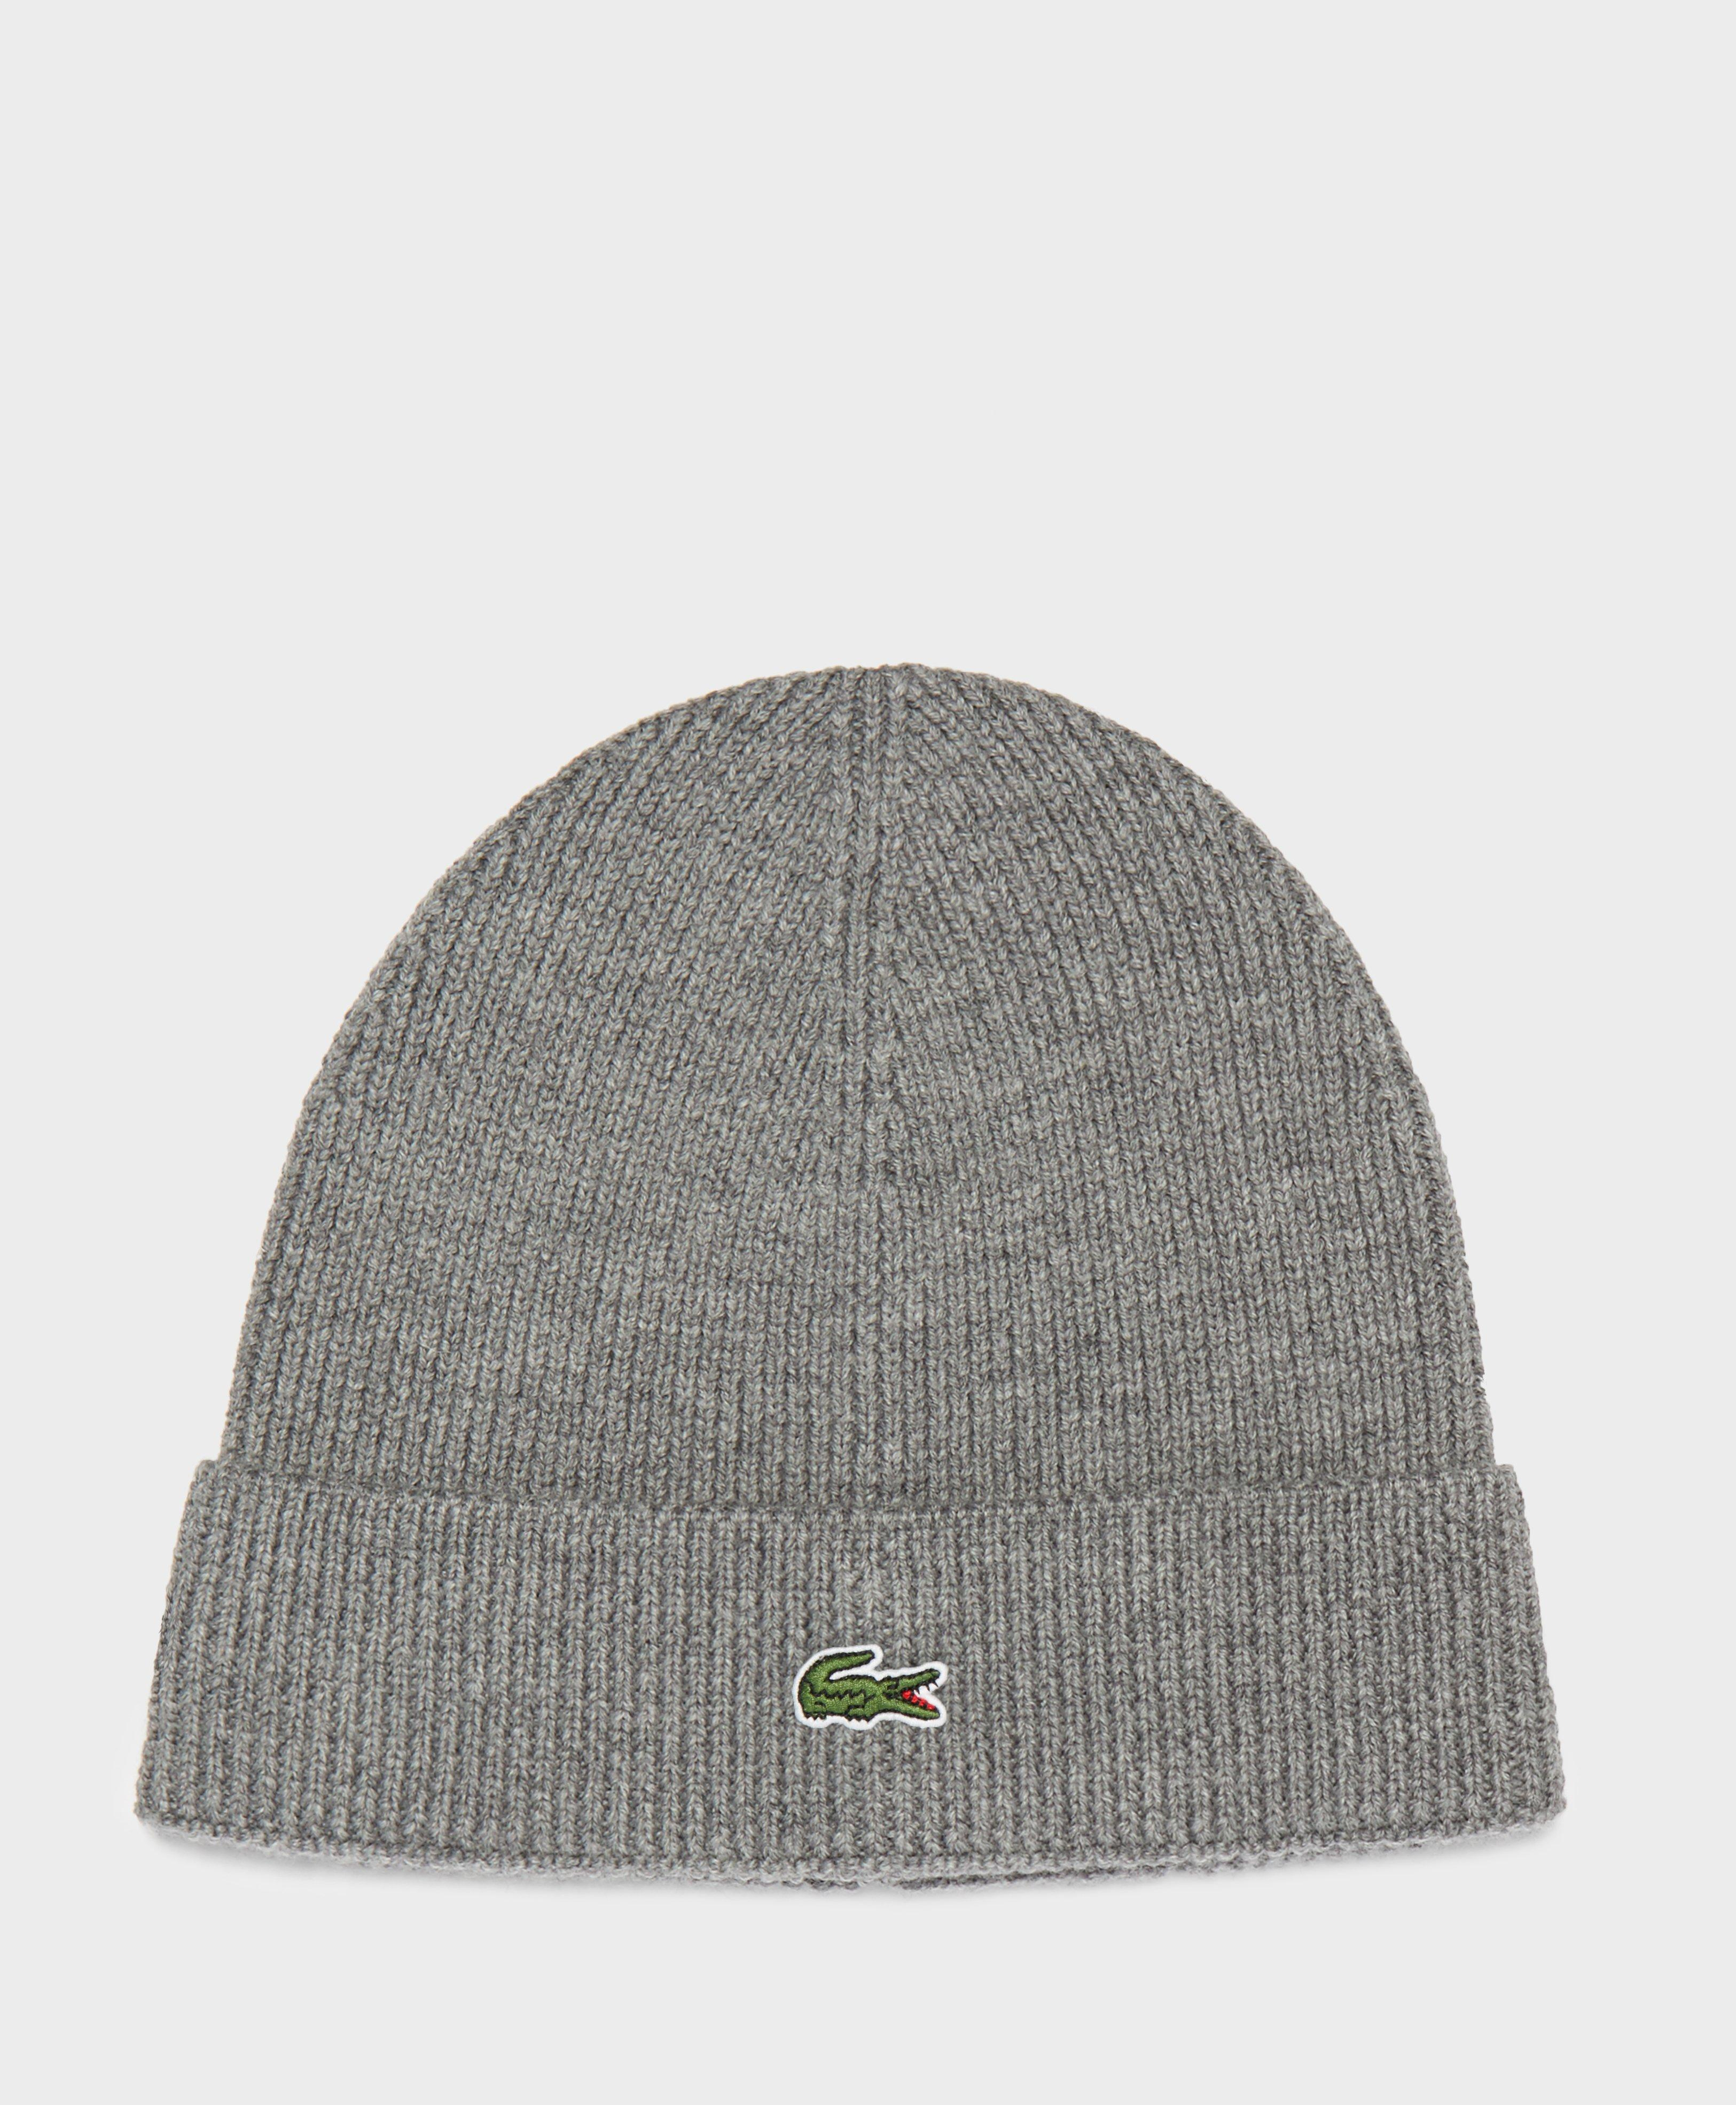 Lyst - Lacoste Ribbed Beanie in Gray for Men cd36f9a336f9